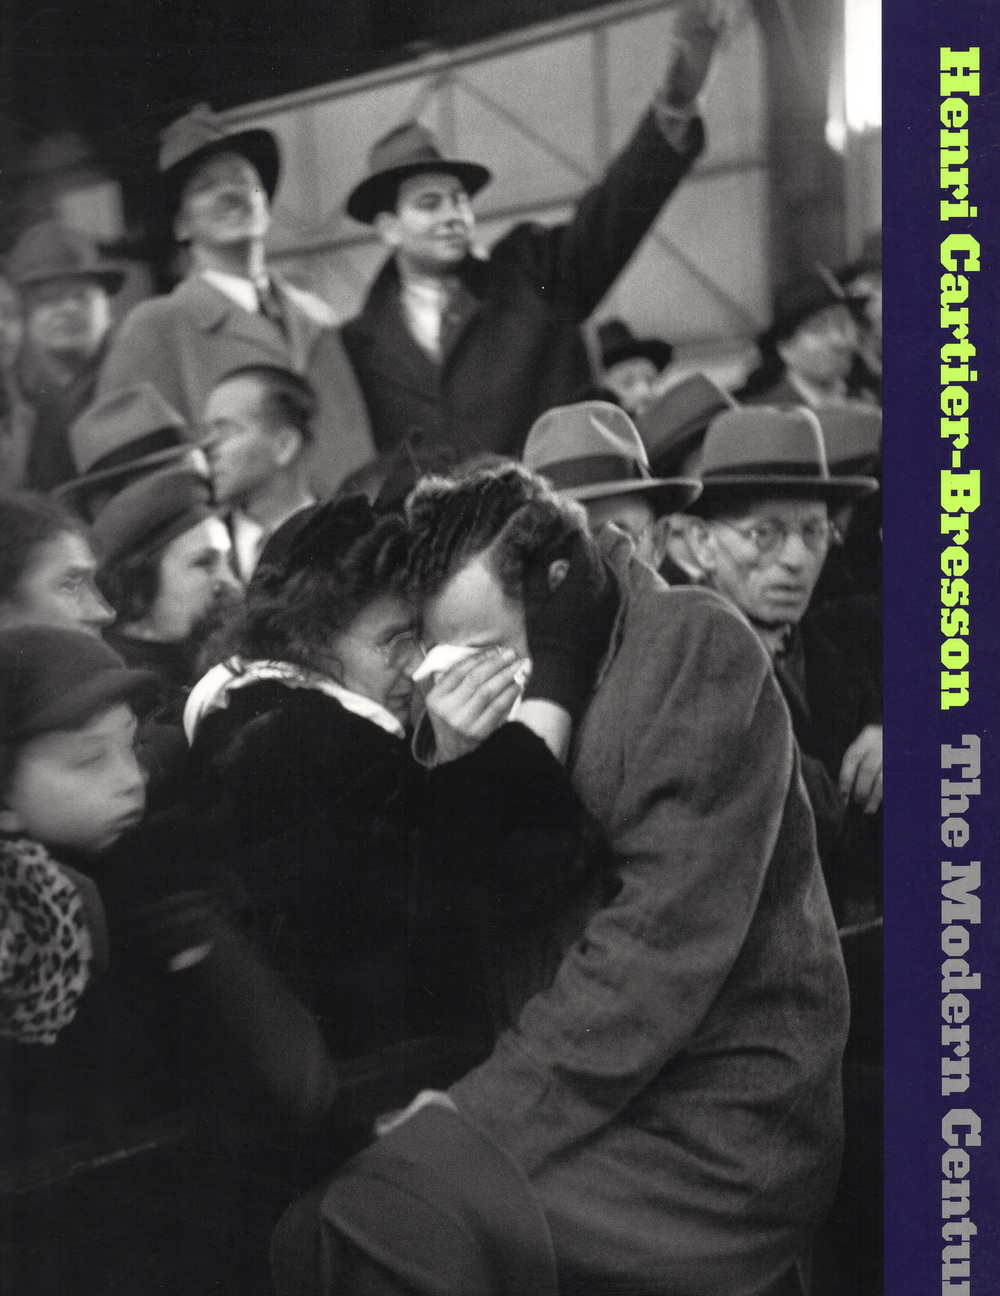 Cover of the Museum of Modern Art's 2010 Retrospective of Henri Cartier-Bresson The Modern Century, copyright 2010, Museum of Modern Art (under Fair Use)